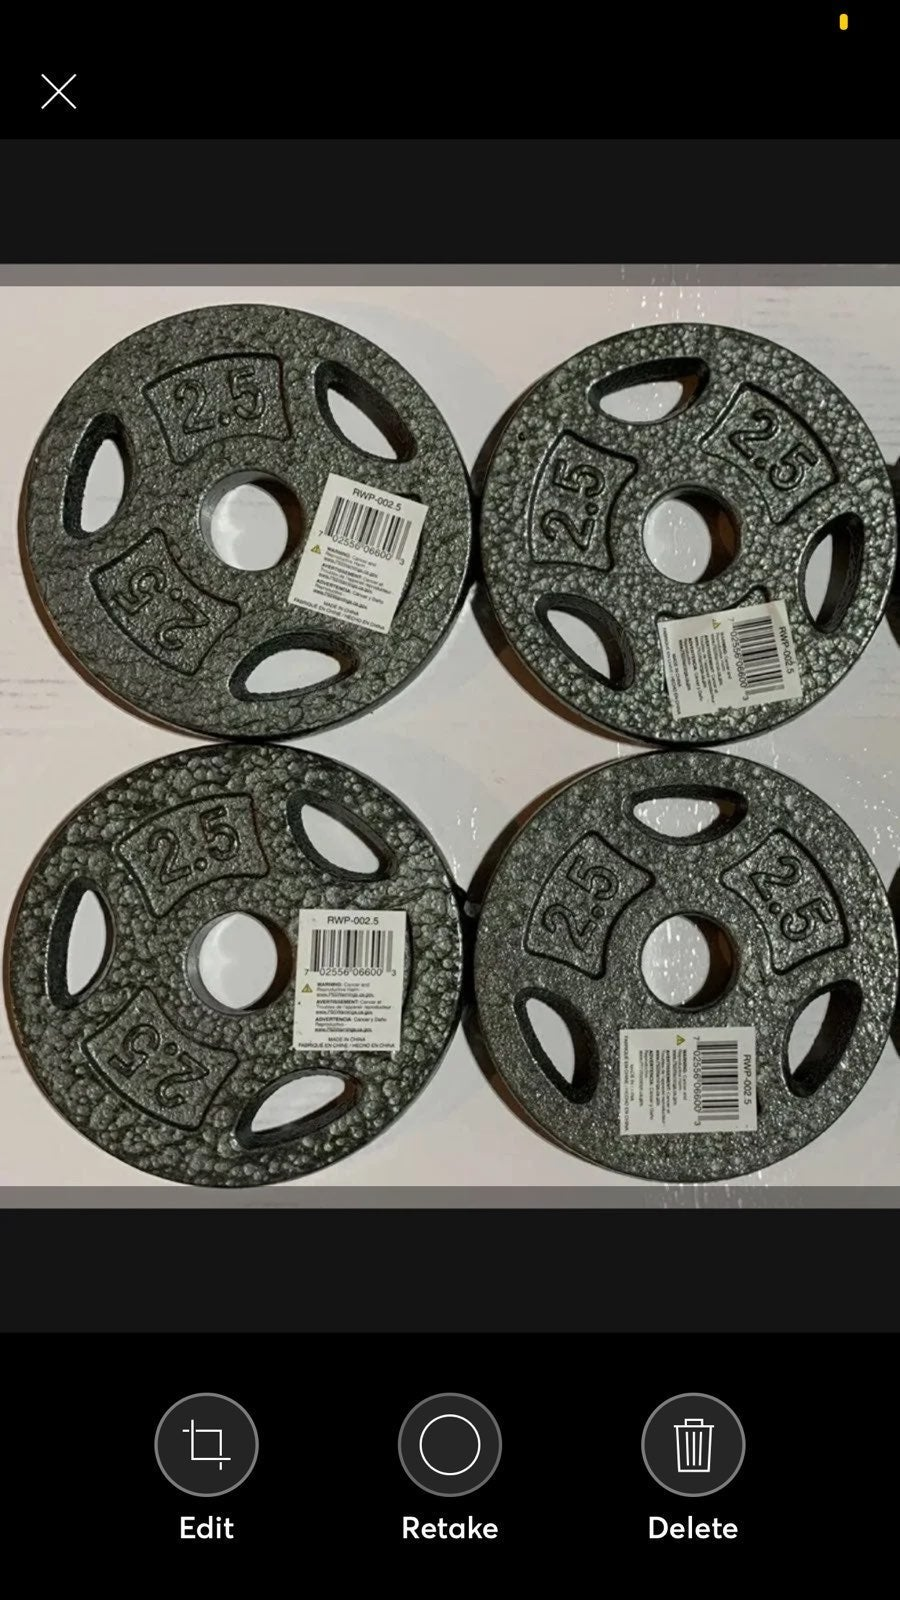 2.5lb 1 inch weight plates (4 NEW